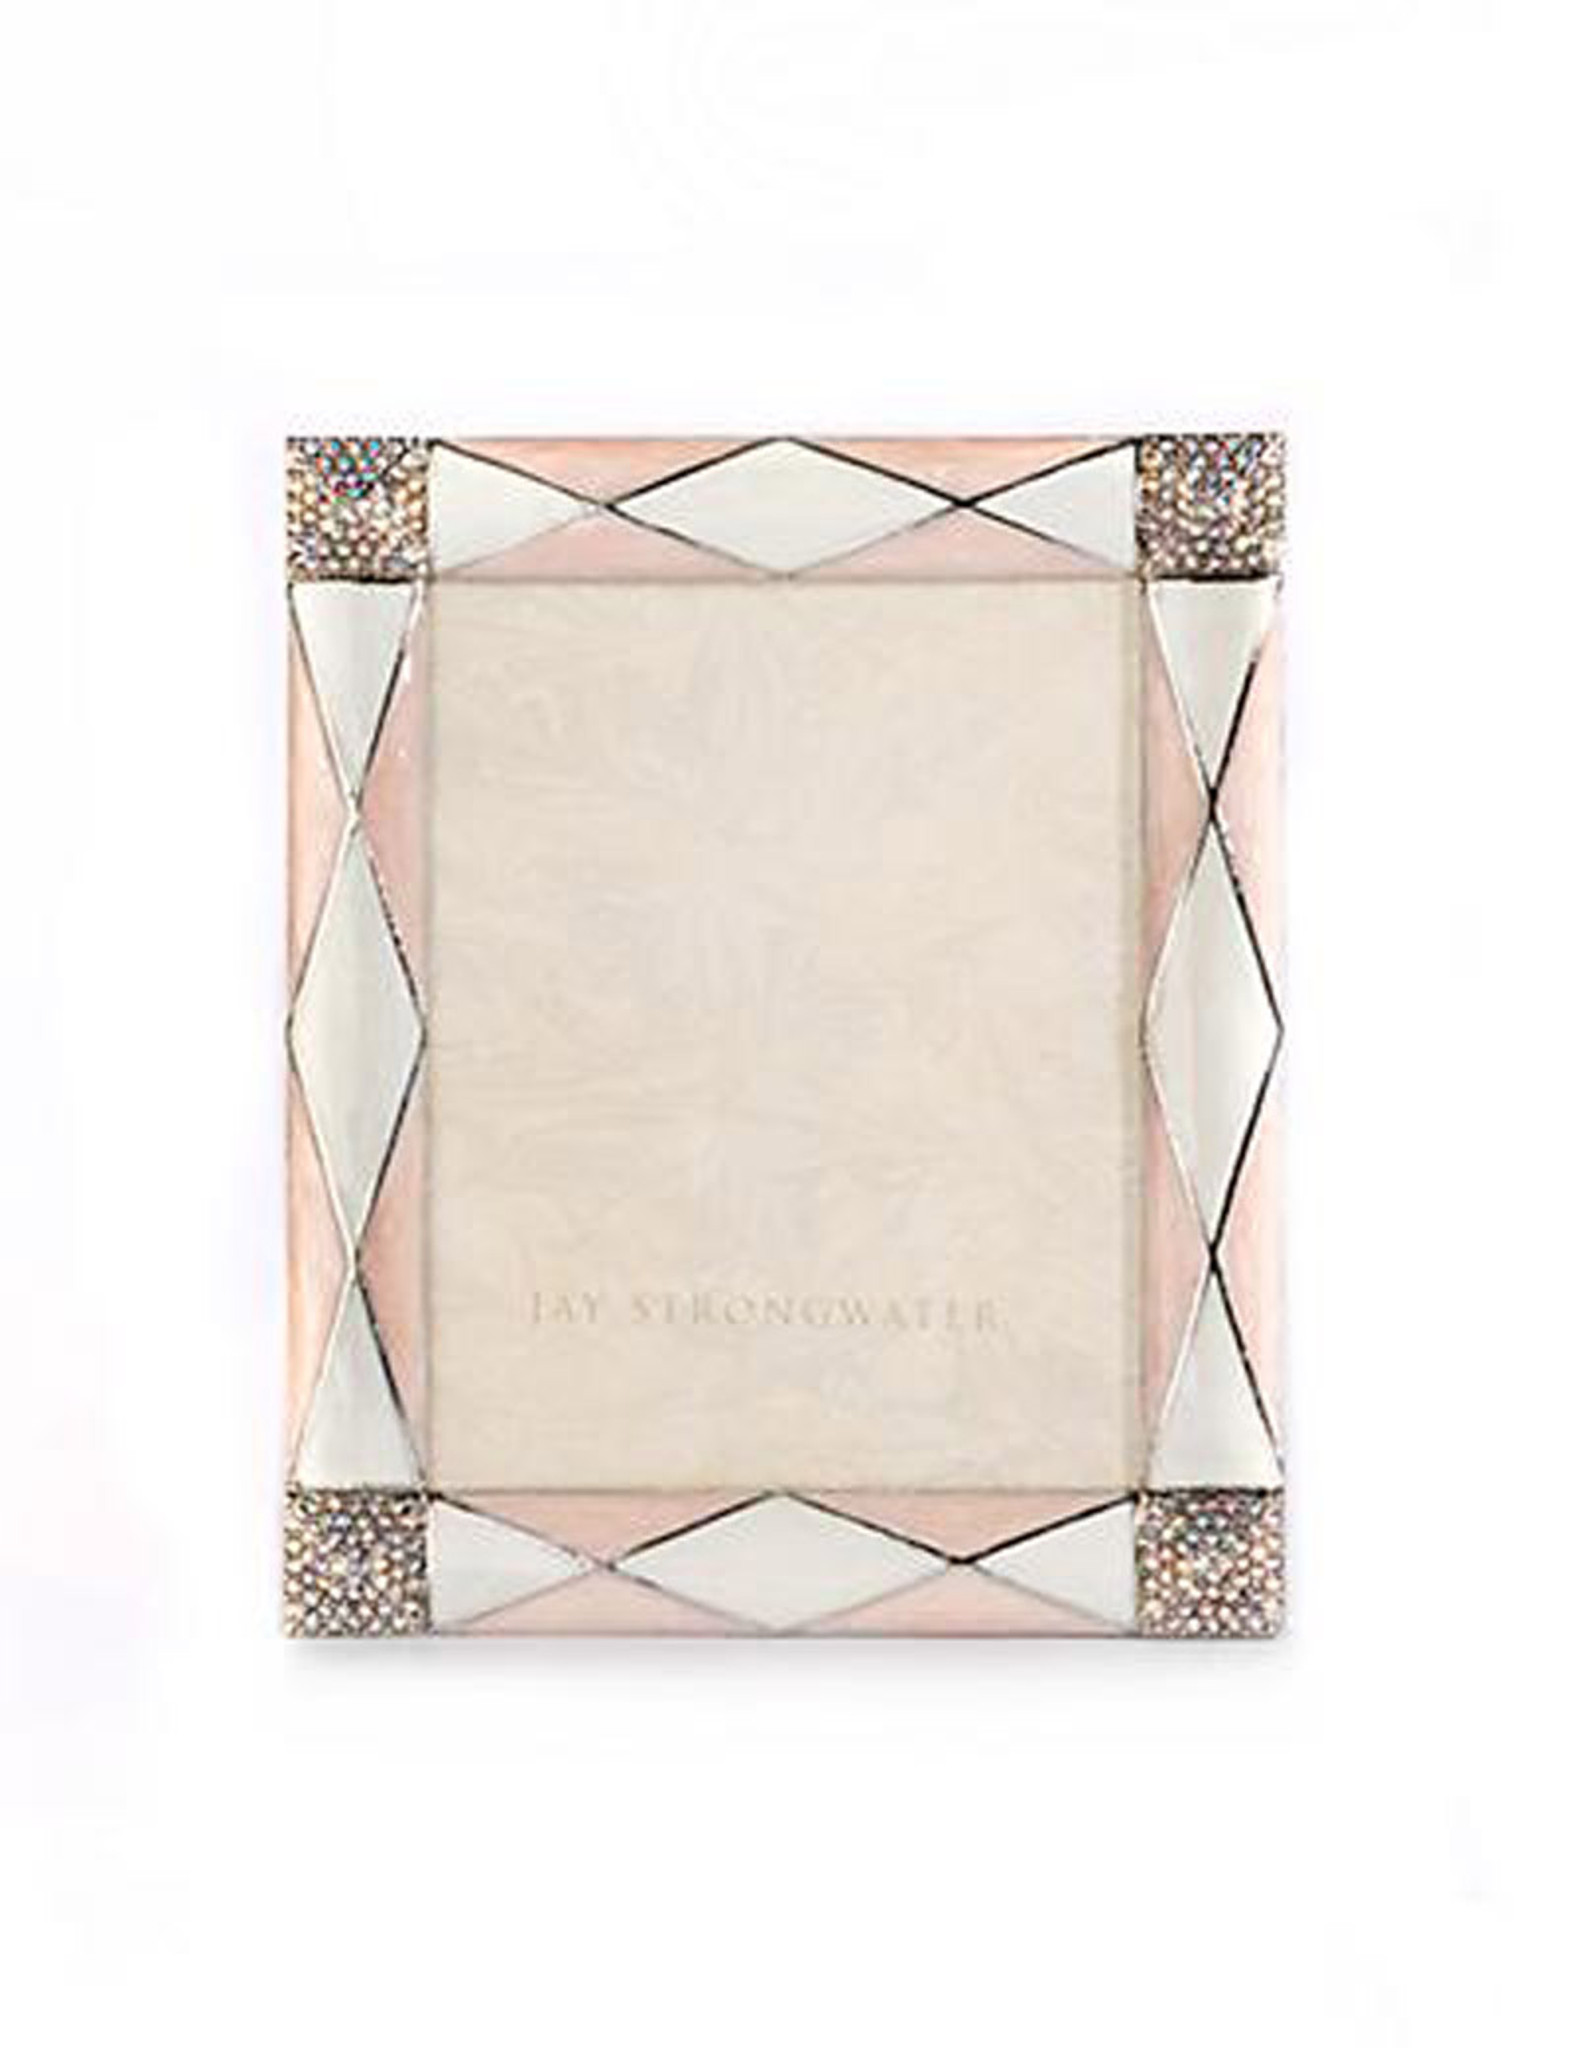 Jay Strongwater Alex Pale Pink Argyle 3 x 4 Inch Picture Frame ...